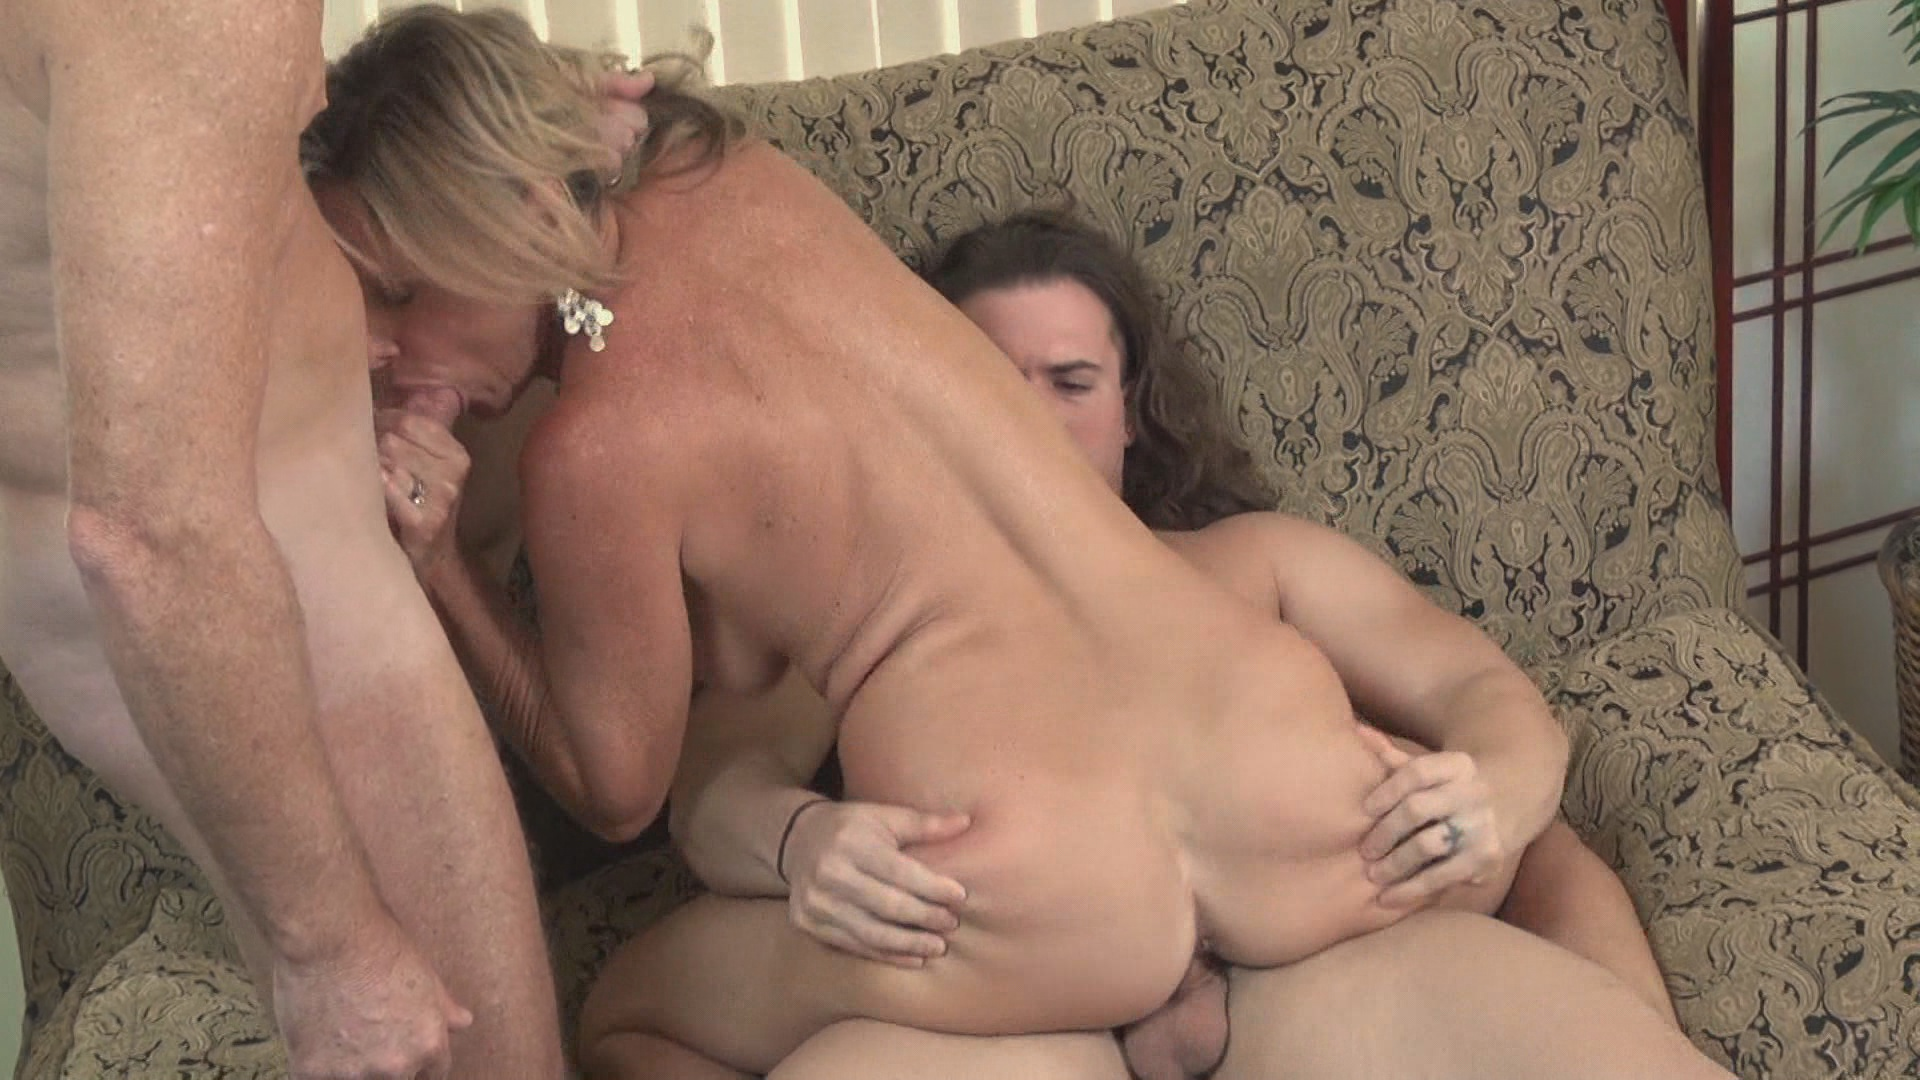 Sins Of Our Fathers 2 xvideos180772